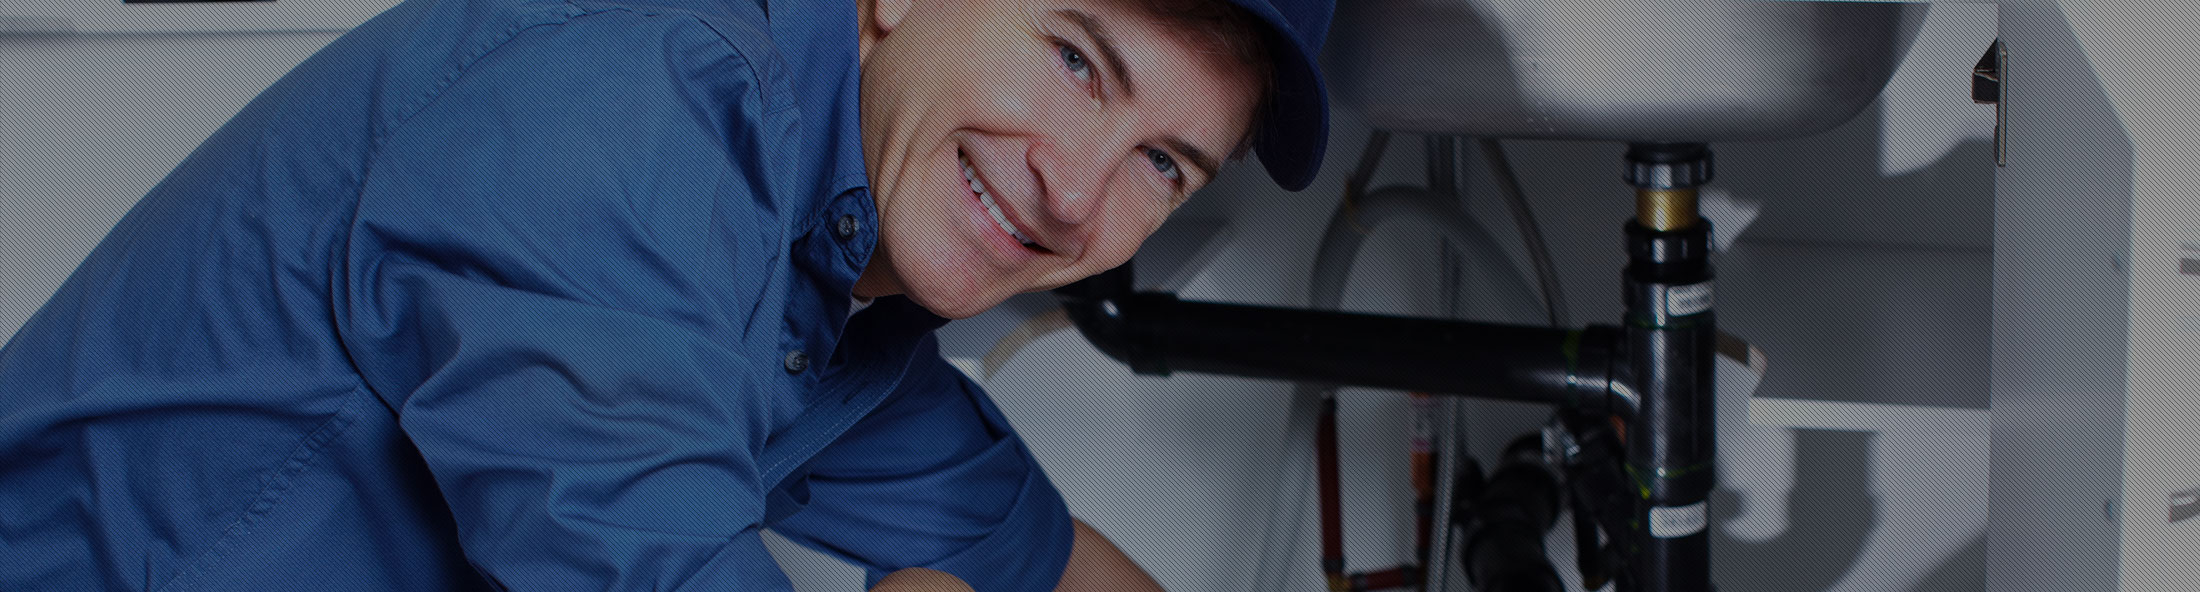 Plumbing Specialists in Colton, CA